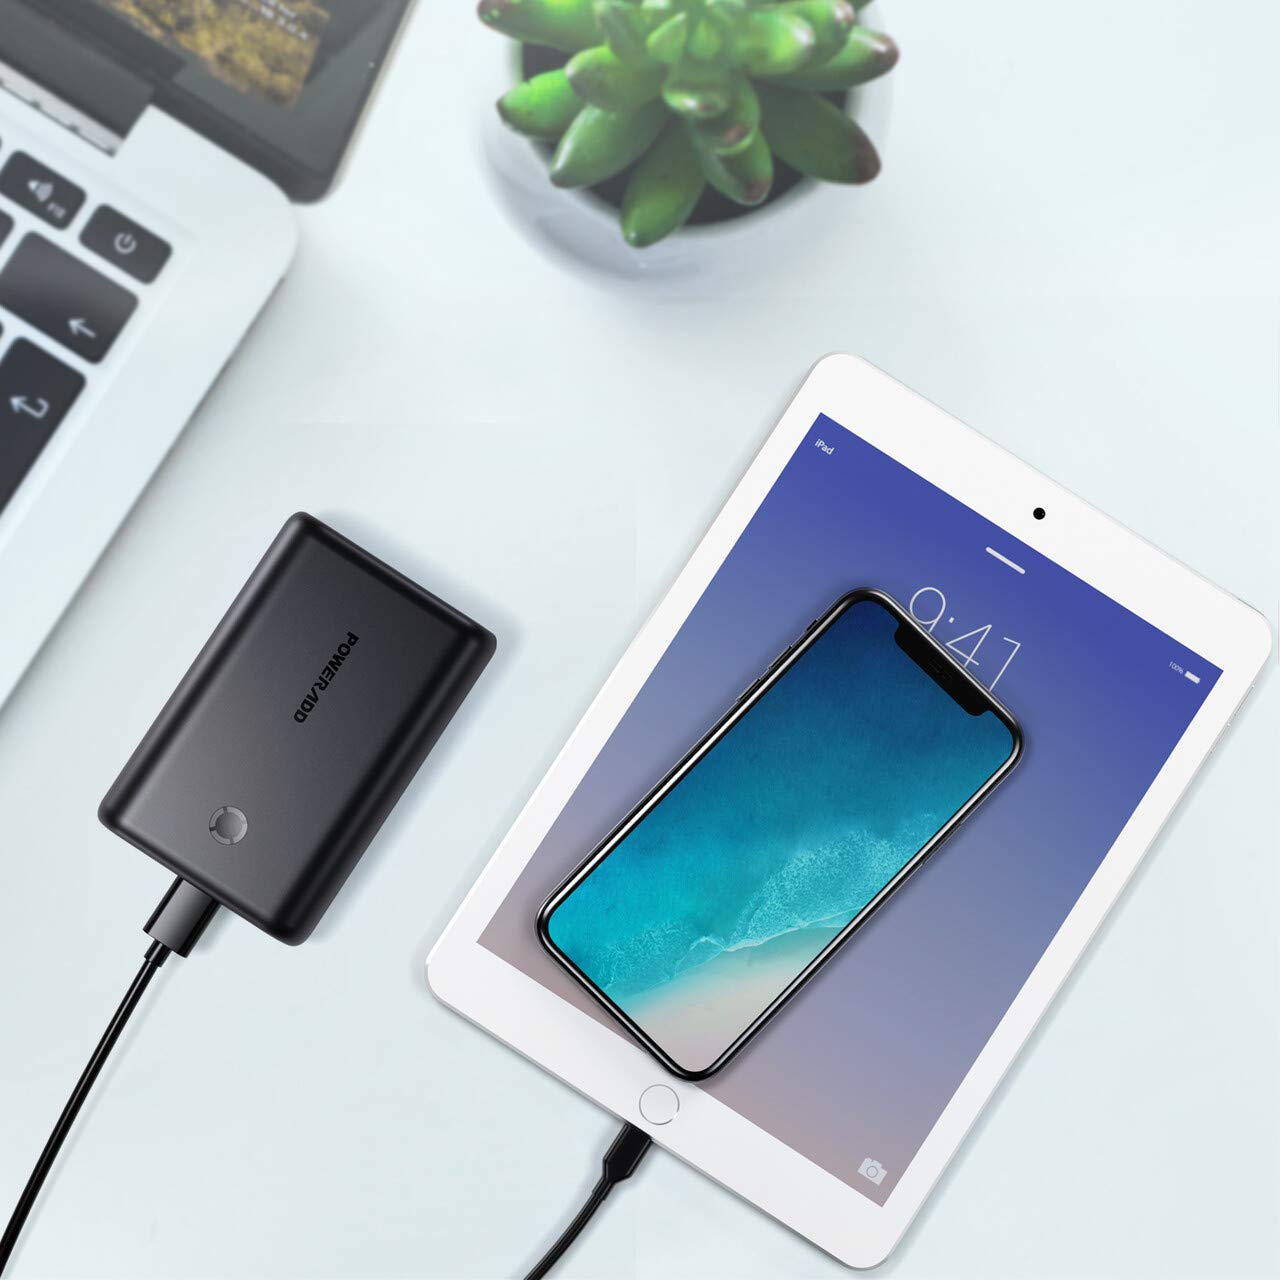 POWERADD EnergyCell 15000 Compact Portable Charger, Dual 5V/2.4A Output Ultra-Portable Cellphone Charger Power Bank for iPhone (11/11 Pro/11 Pro Max), Samsung, iPad, iPod and More Devices